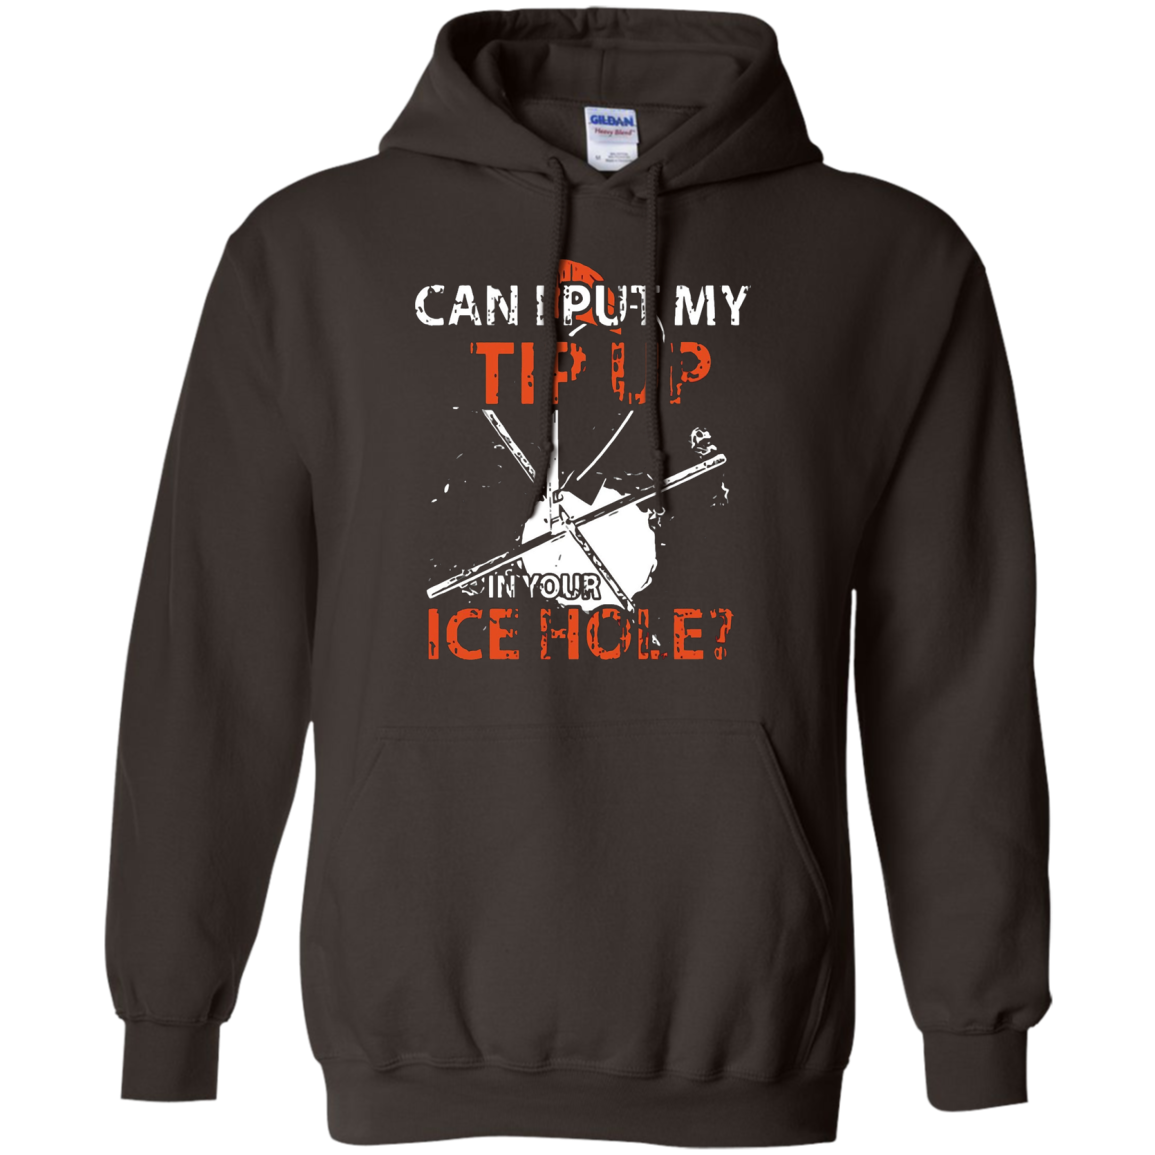 Fishing t shirt CAM I PUT MY TIP UP IN YOUR ICE HOLE shirt